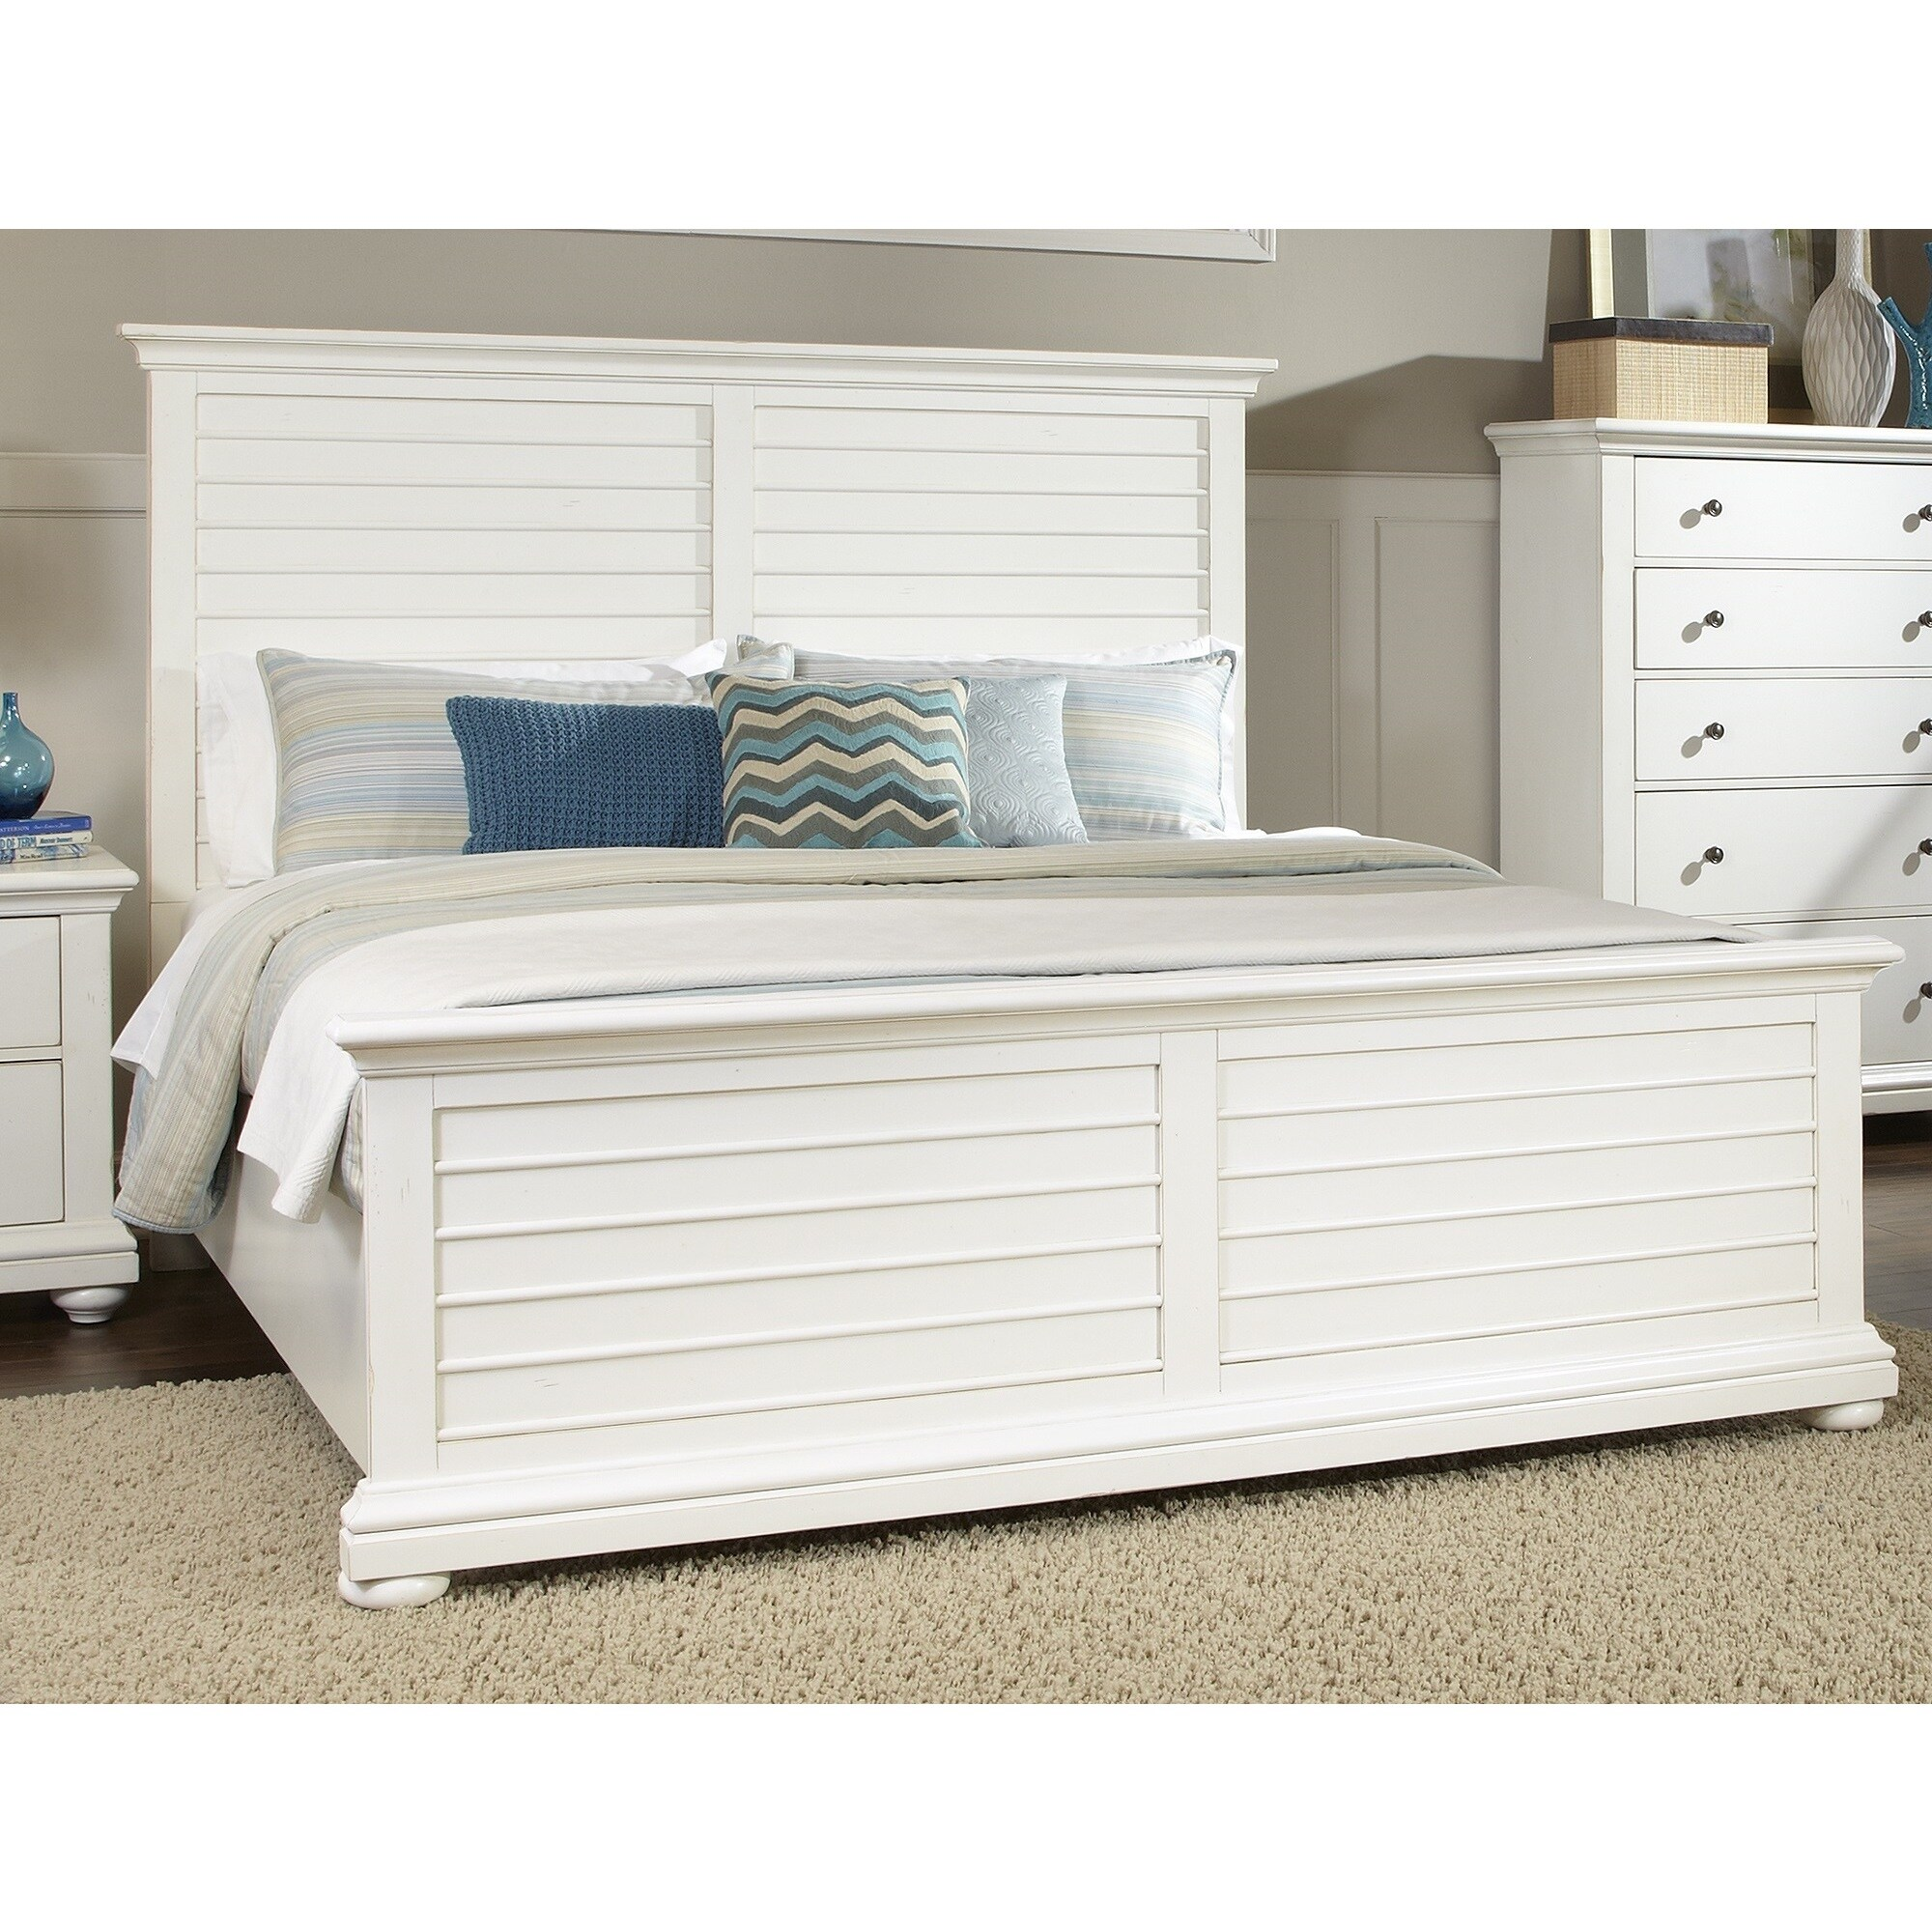 Huntington Bedroom Furniture Huntington Casual Panel Bed By Greyson Living